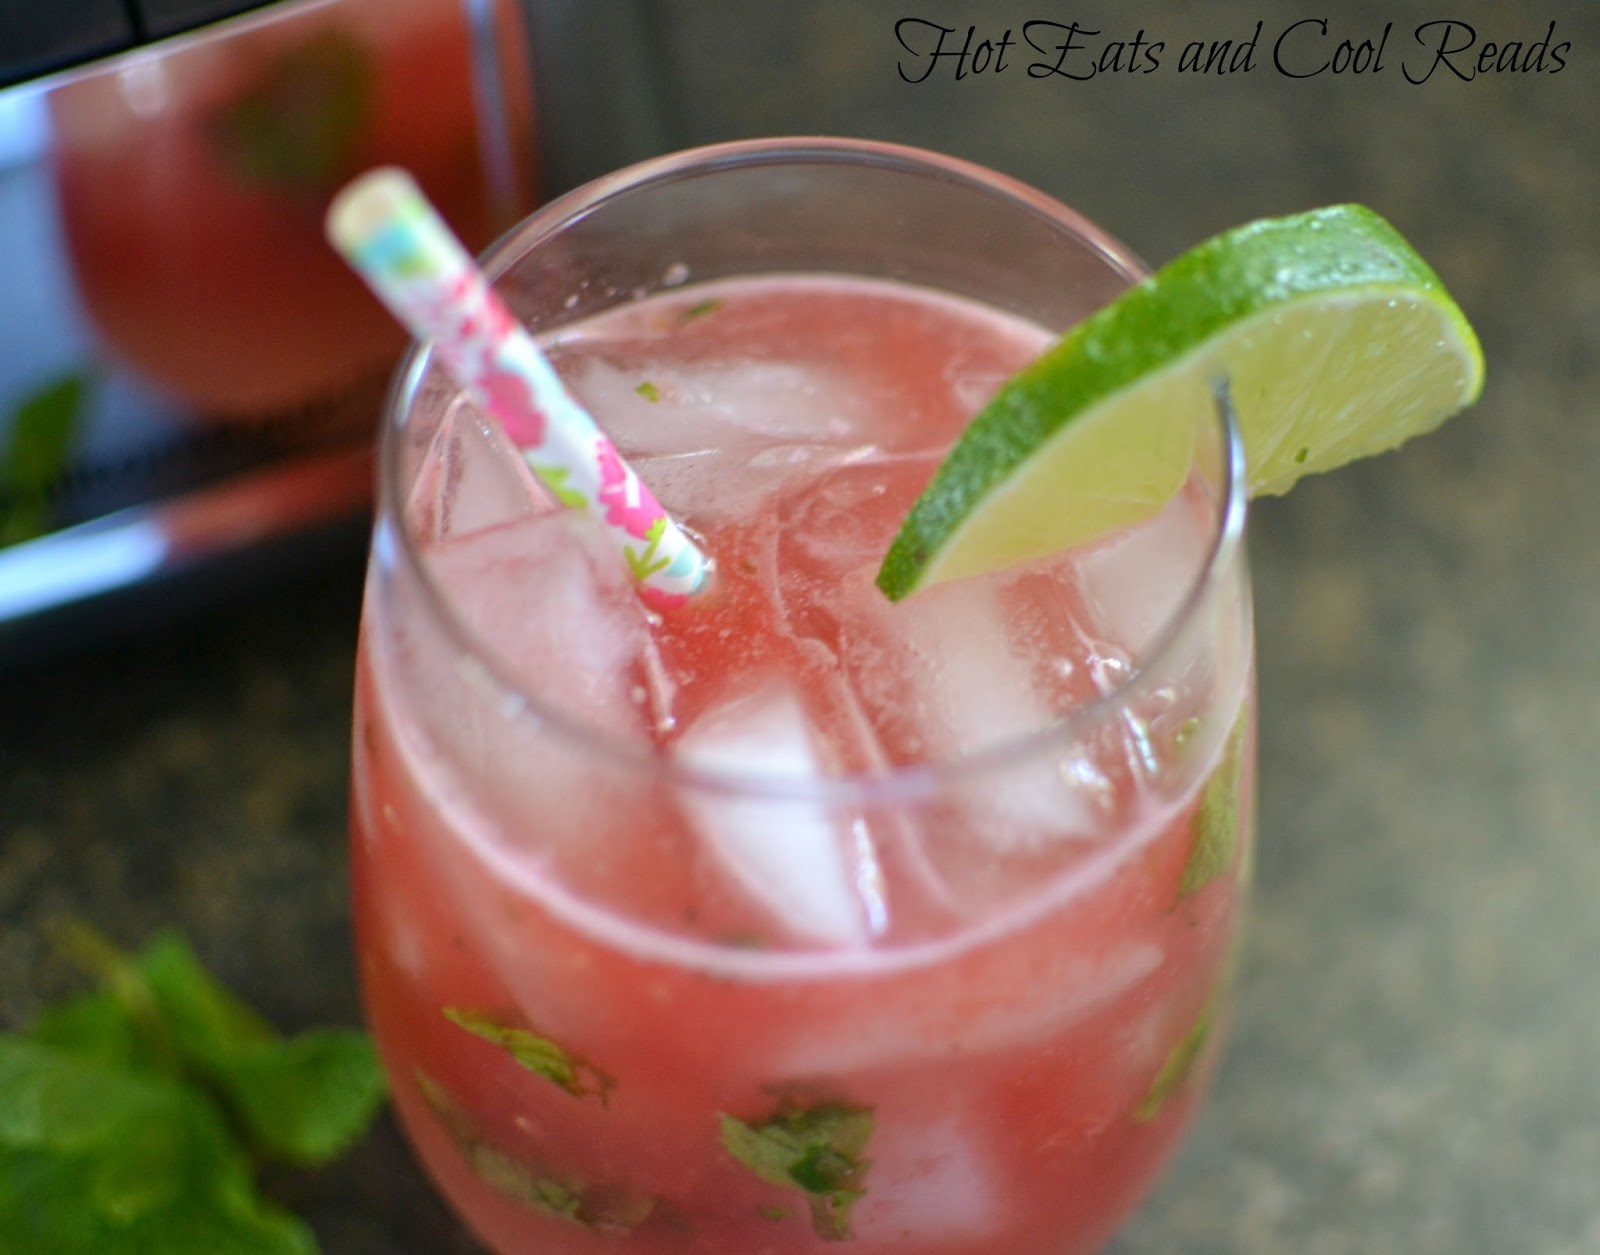 ... Eats and Cool Reads: Watermelon Mint Lemonade Recipe plus Giveaway